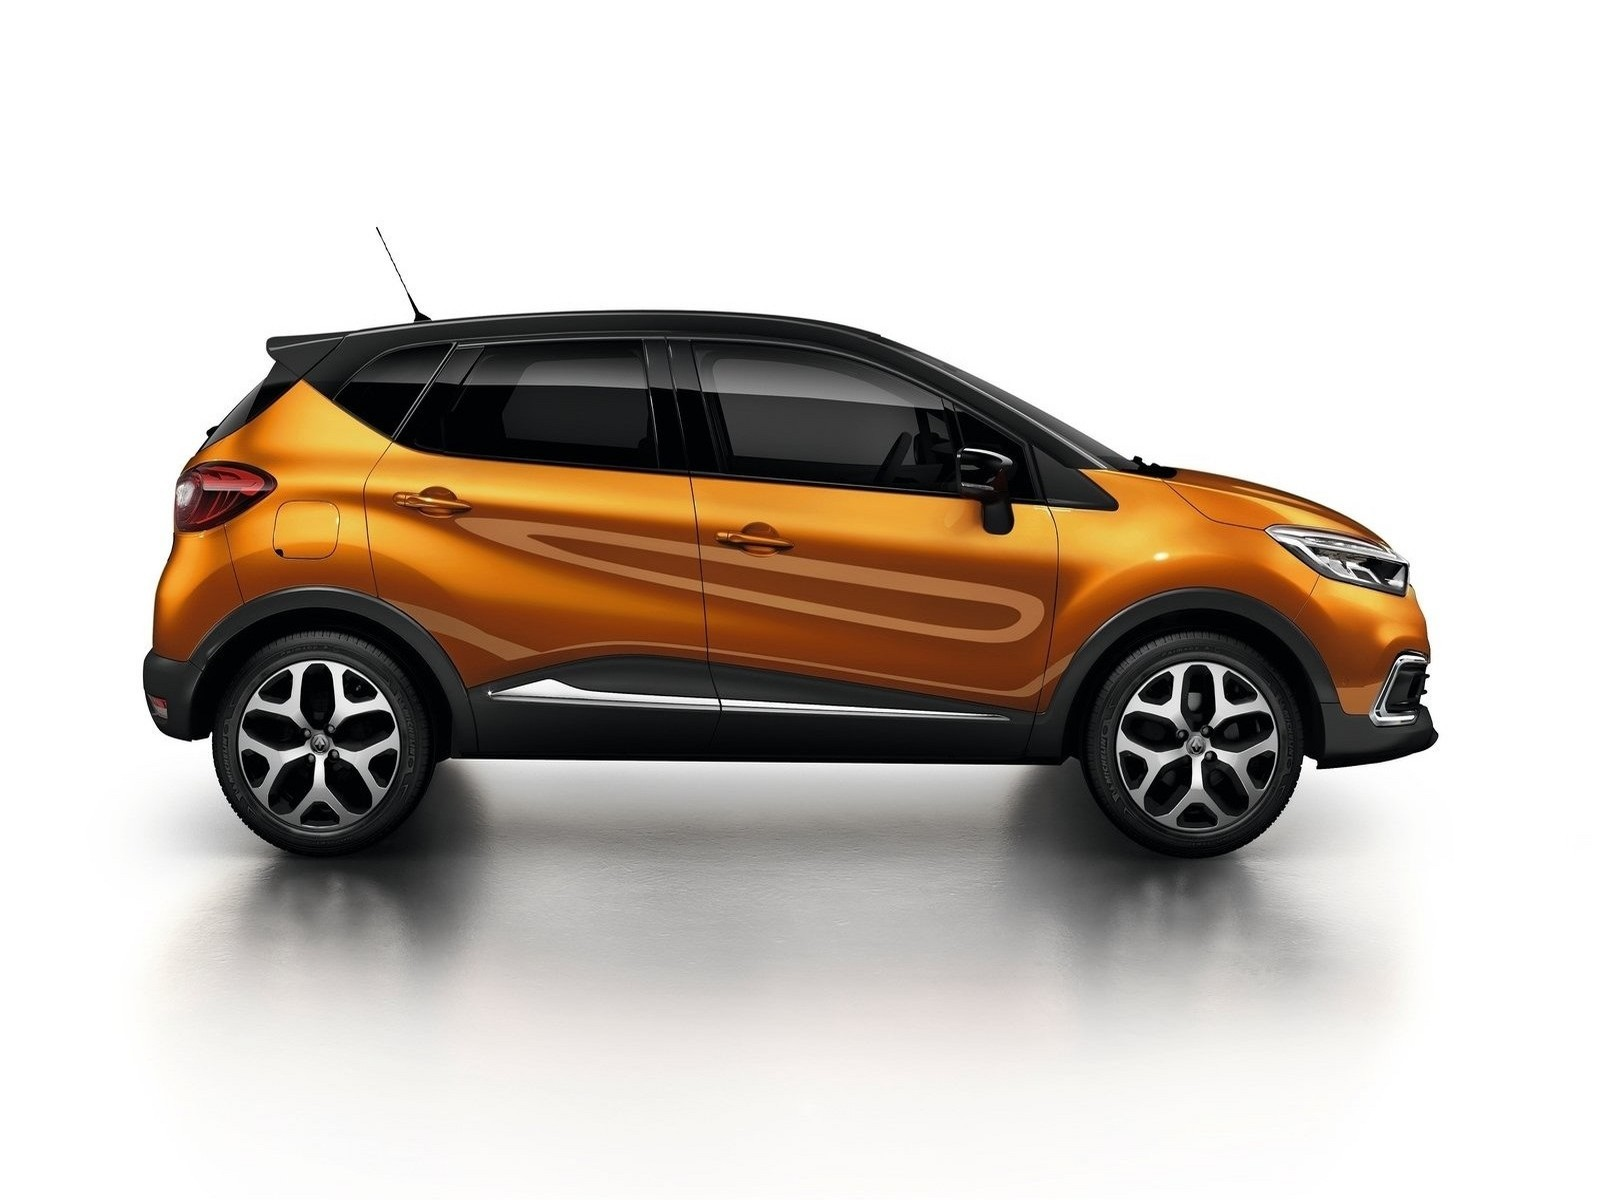 renault captur 2018 moteur de 2 0 litres qui g n re 133 ch photoscar. Black Bedroom Furniture Sets. Home Design Ideas